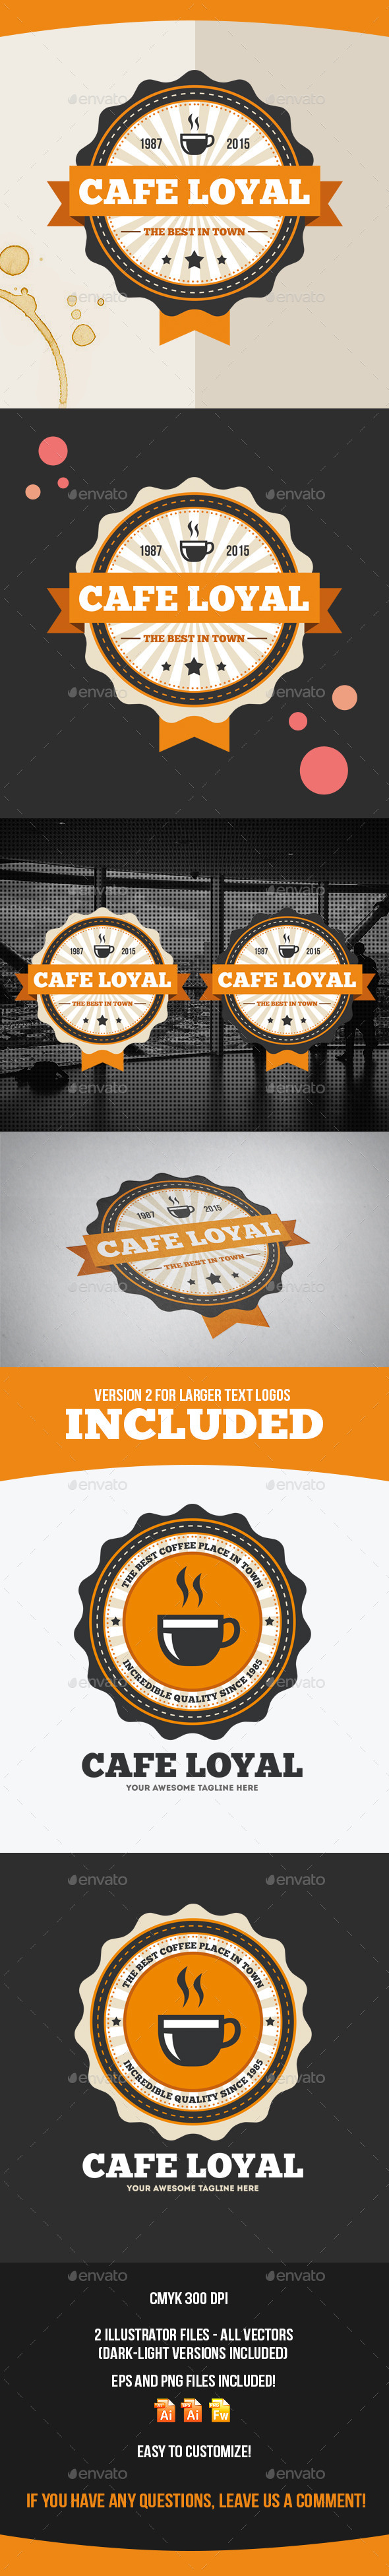 Cafe Loyal Logo Template - Food Logo Templates